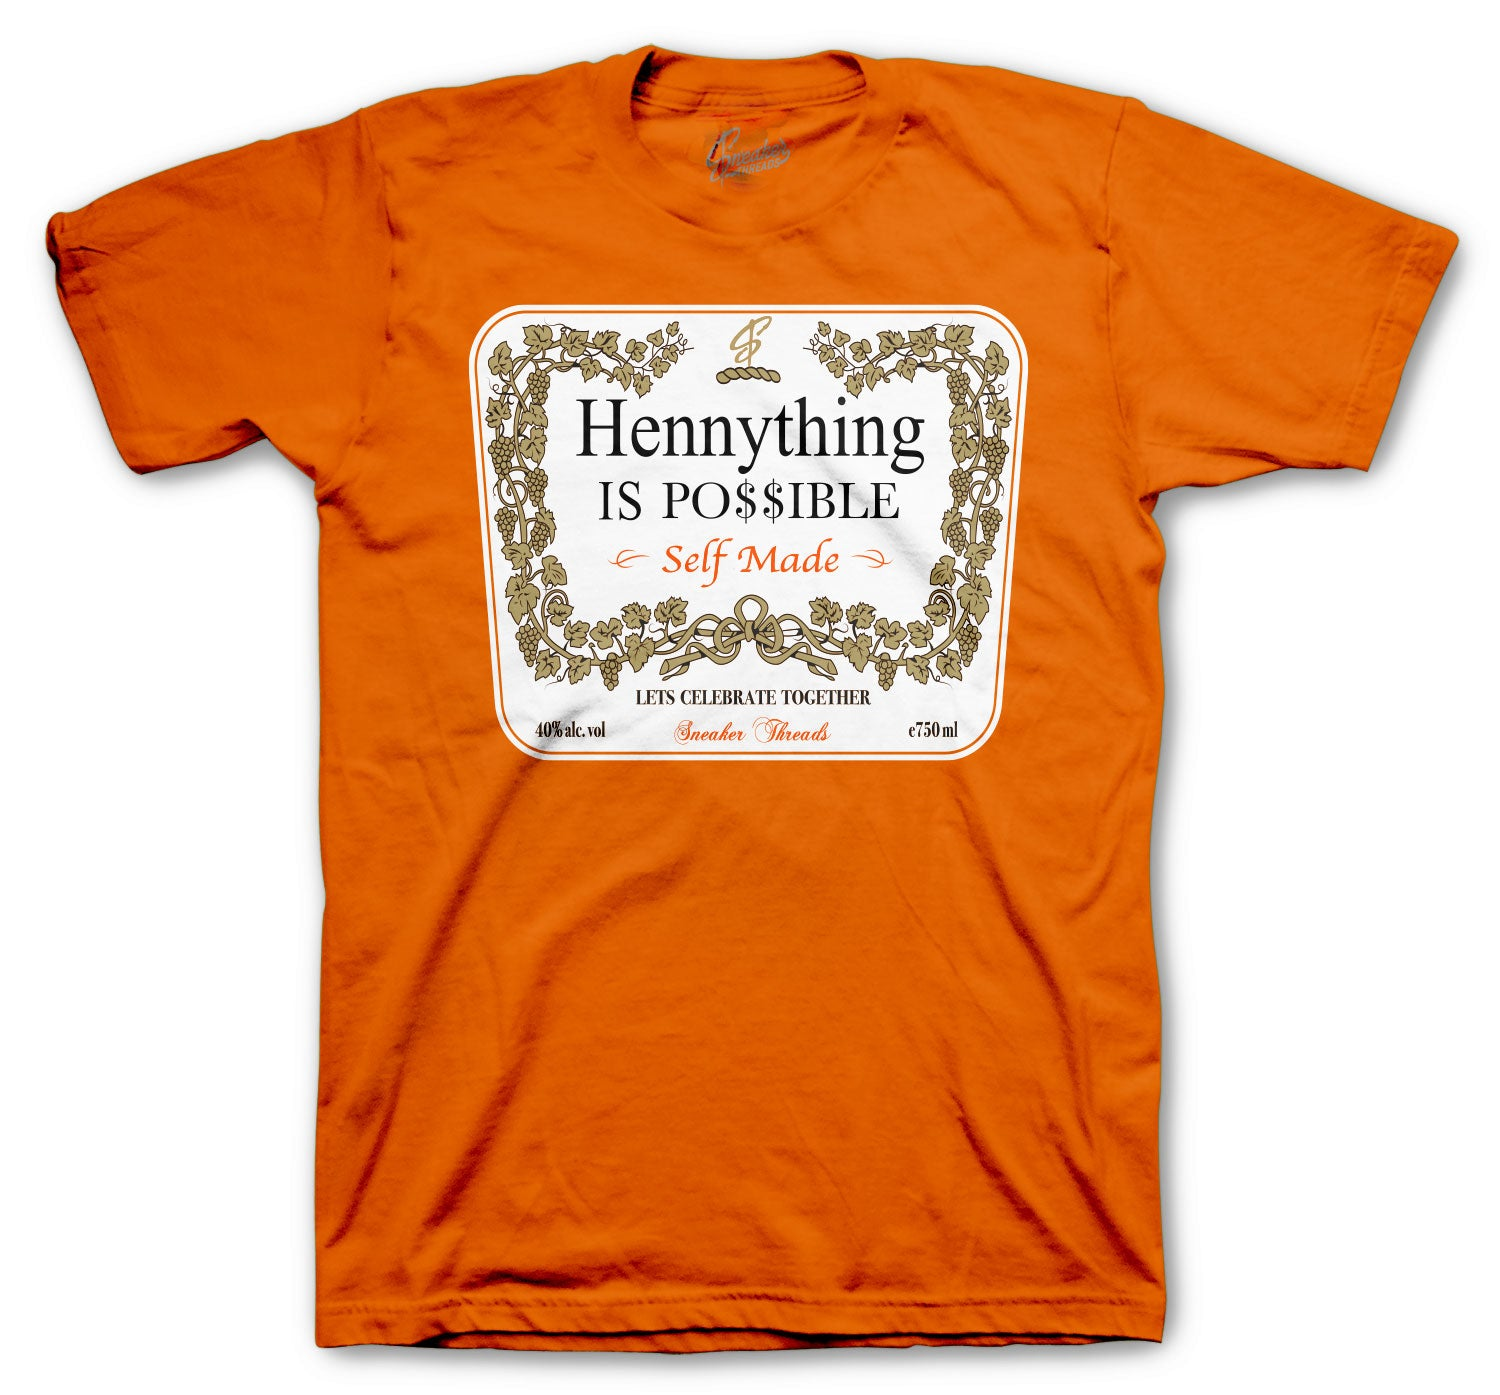 Jordan Starfish Hennything Shirt